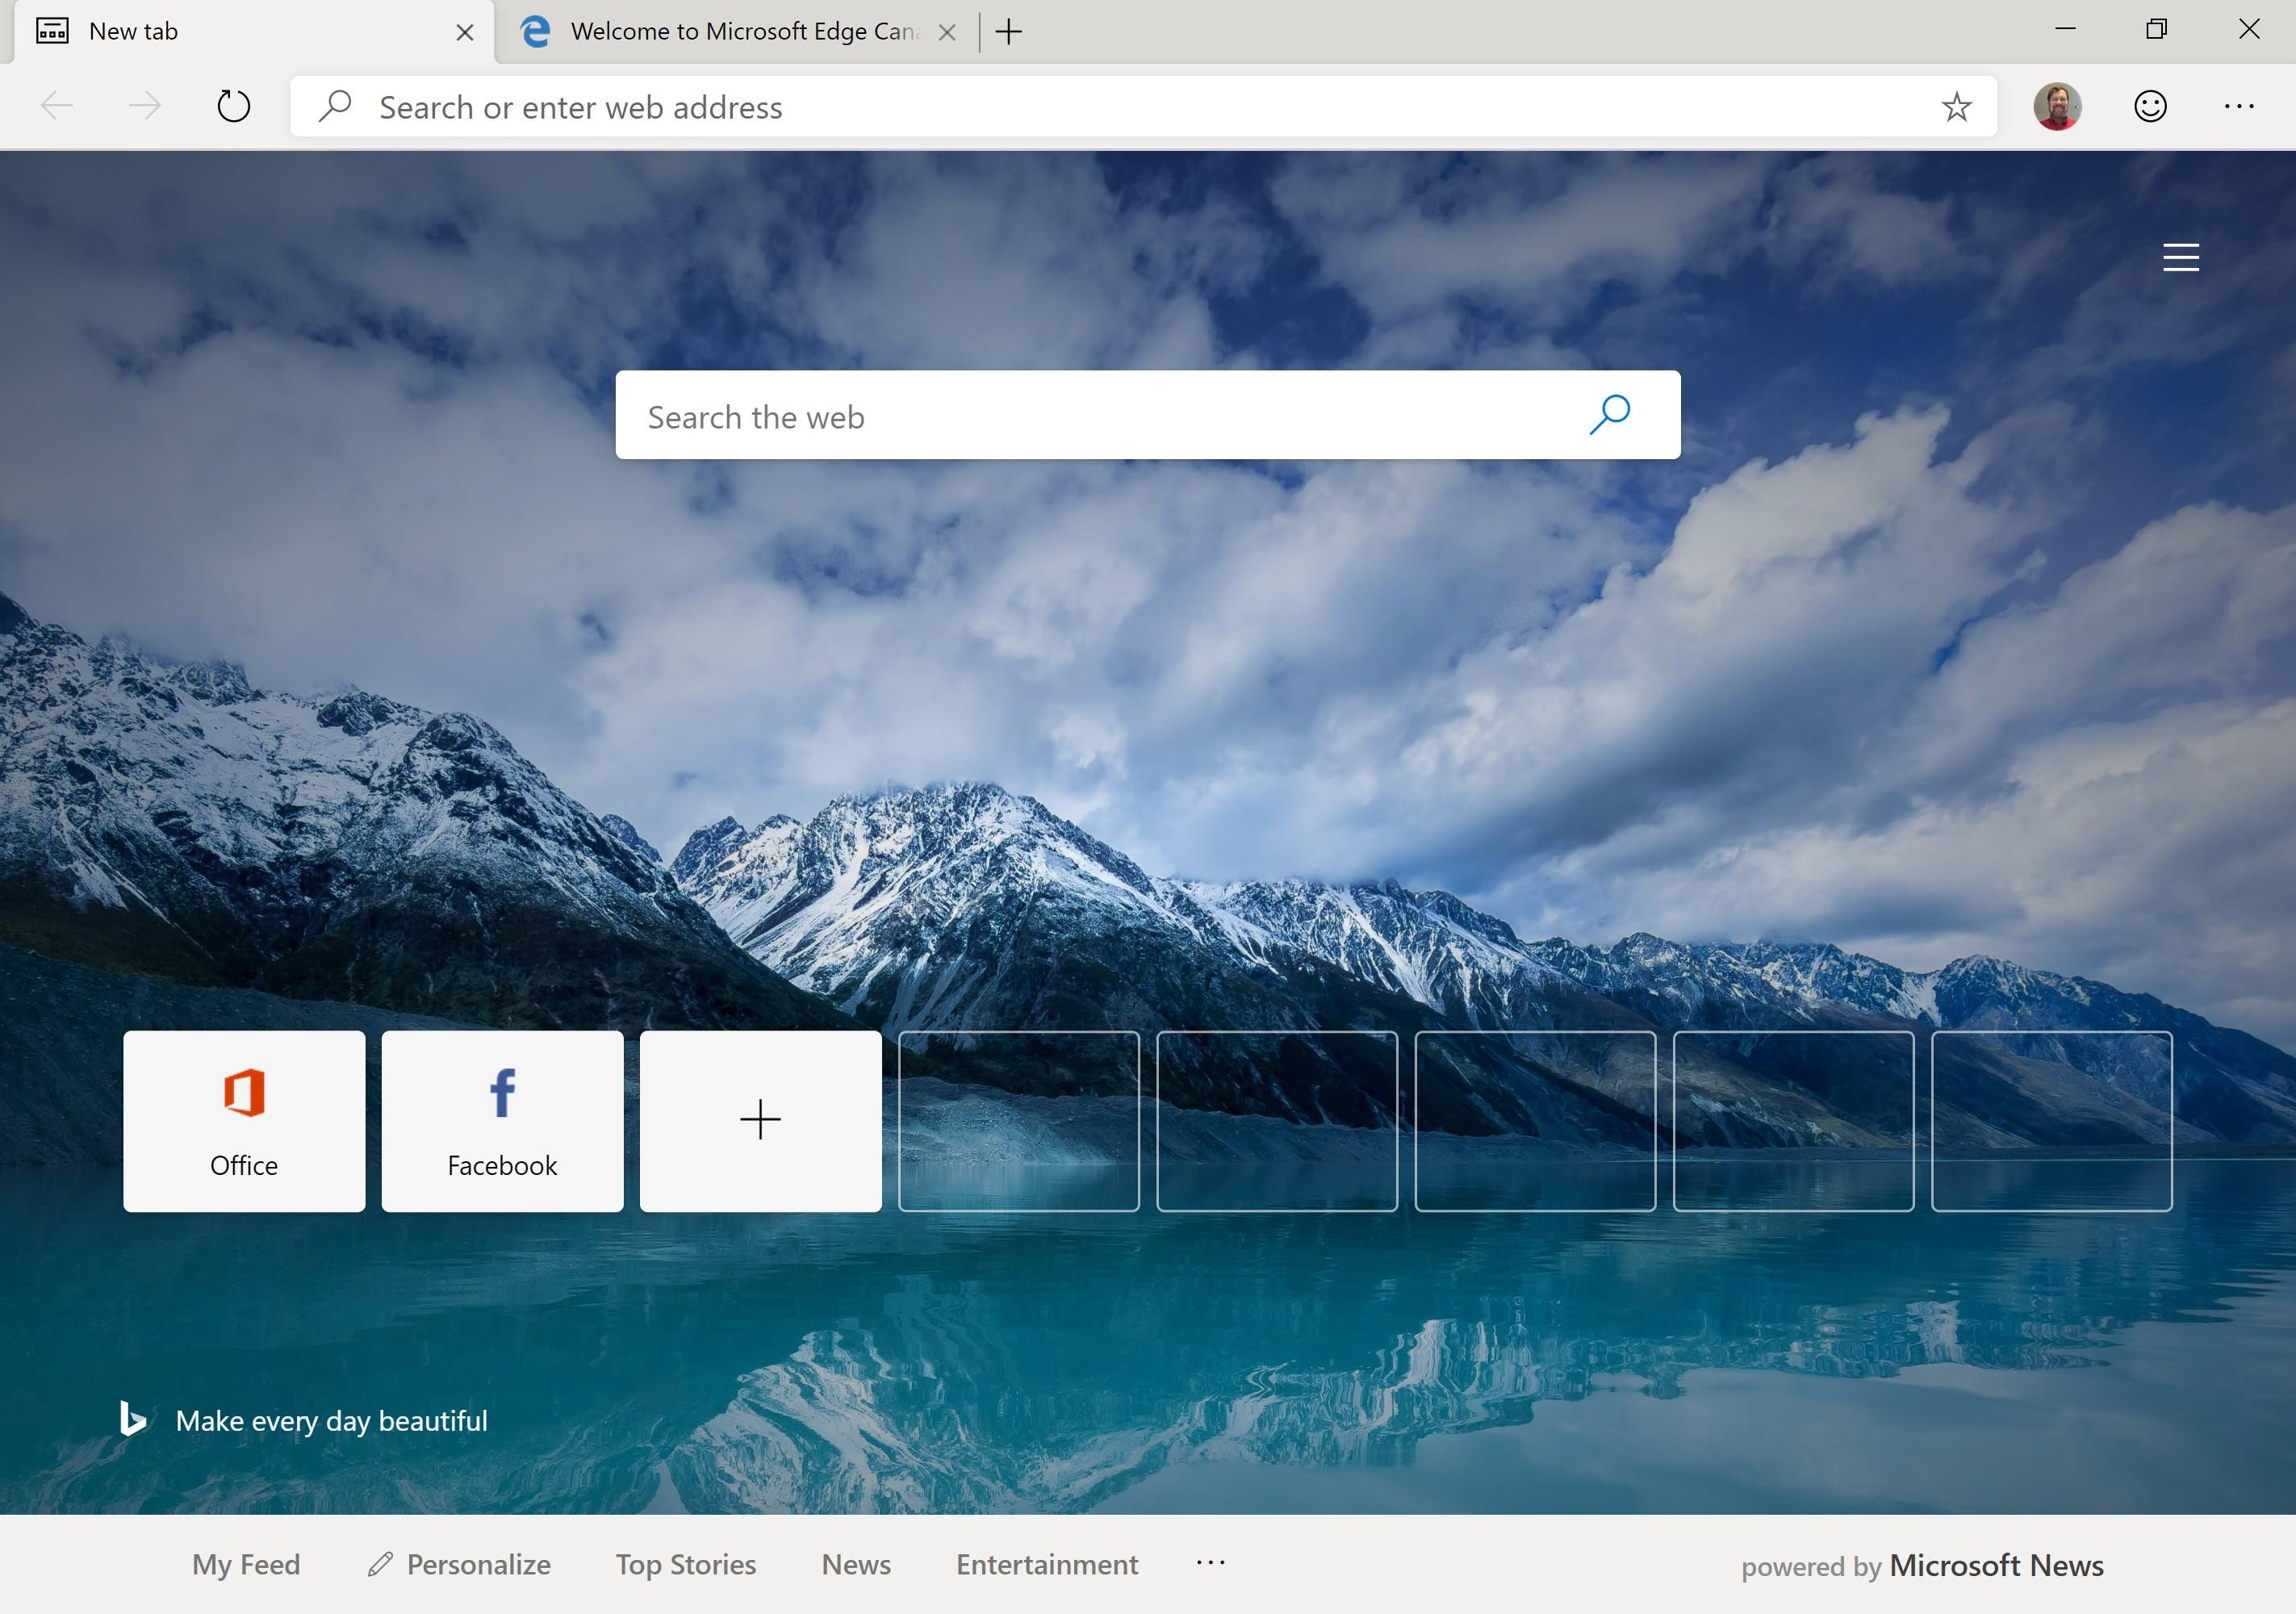 Chromium-based Microsoft Edge offers to show new tabs with a scenic background, though barer-bones options are available. If you don't import earlier browsing data, it comes with tabs for Microsoft Office and Facebook.